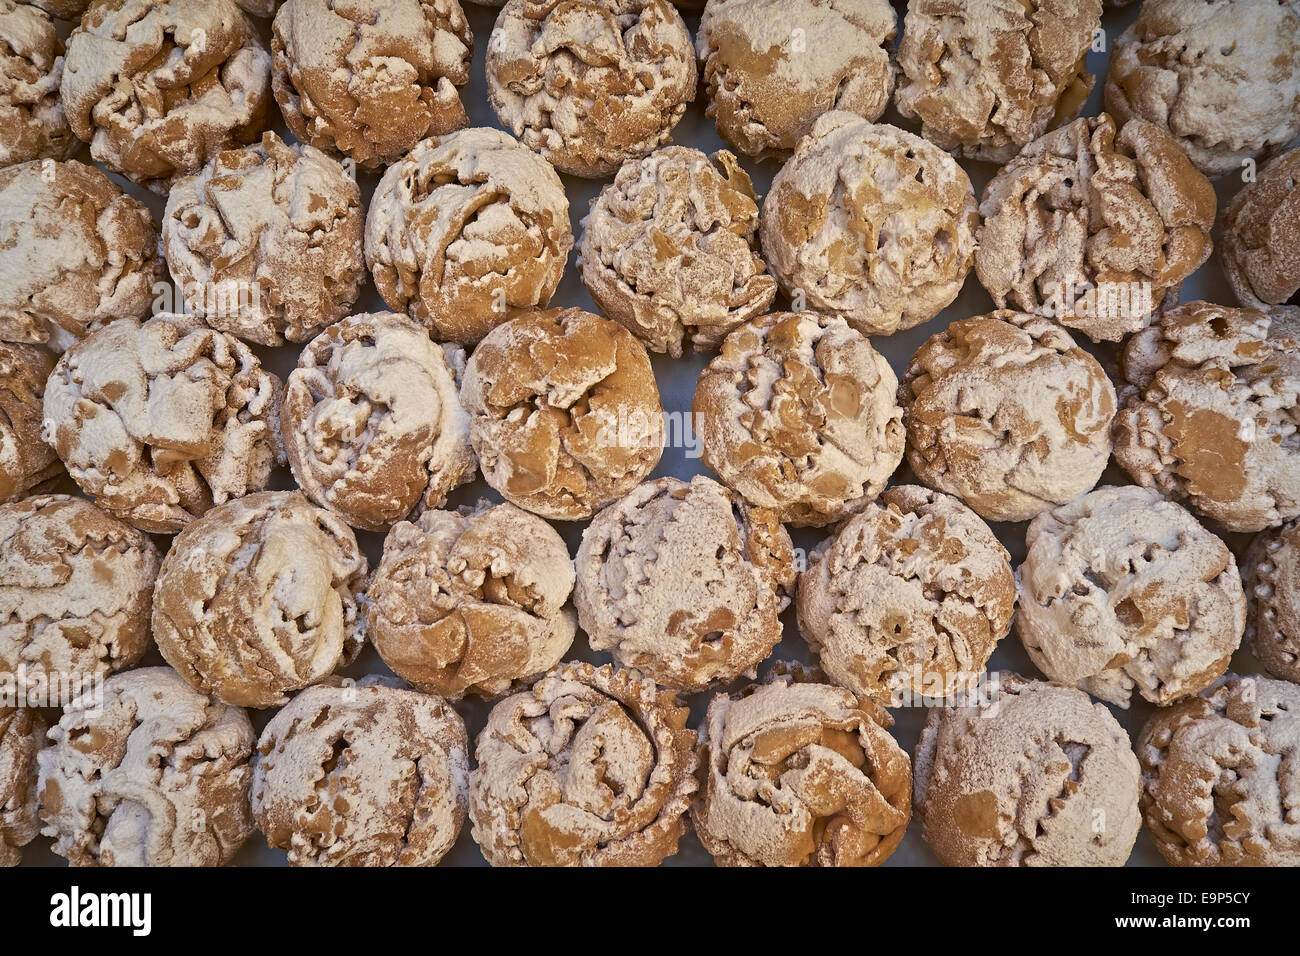 Schneeballen or snowballs, specialty, pastry from Bavaria, Germany - Stock Image